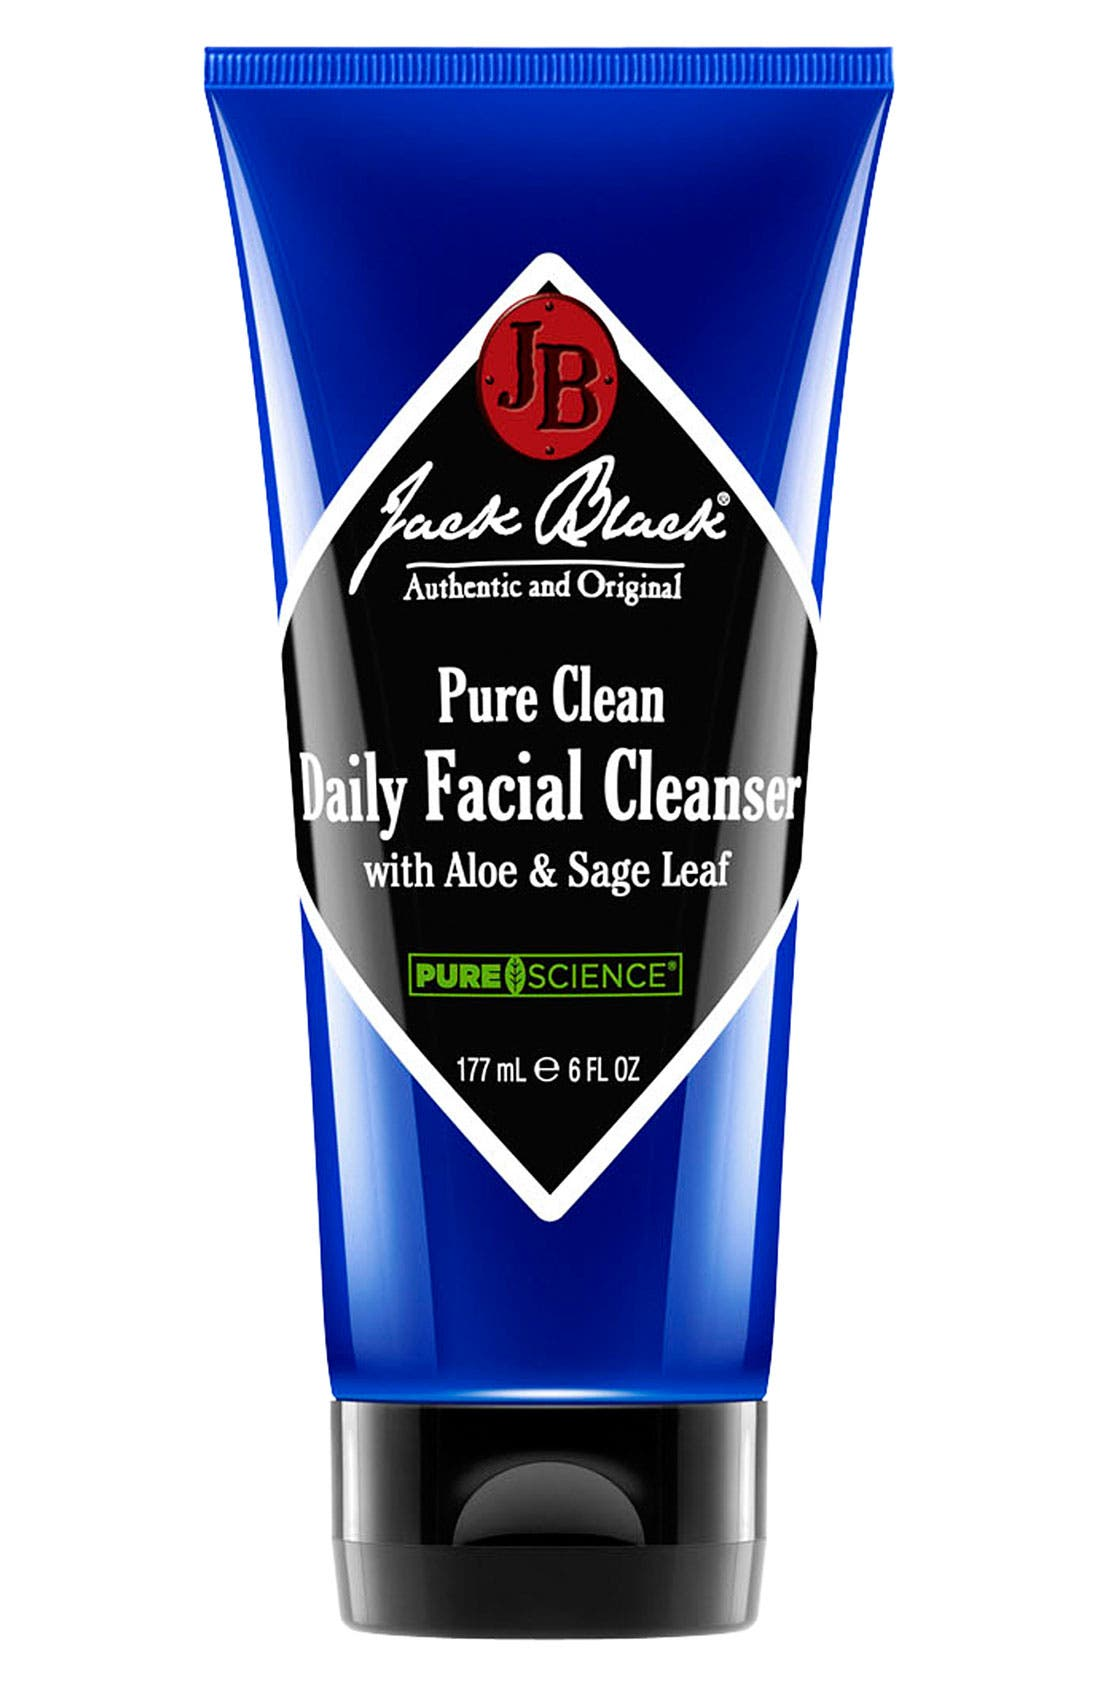 Jack Black 'Pure Clean' Daily Facial Cleanser